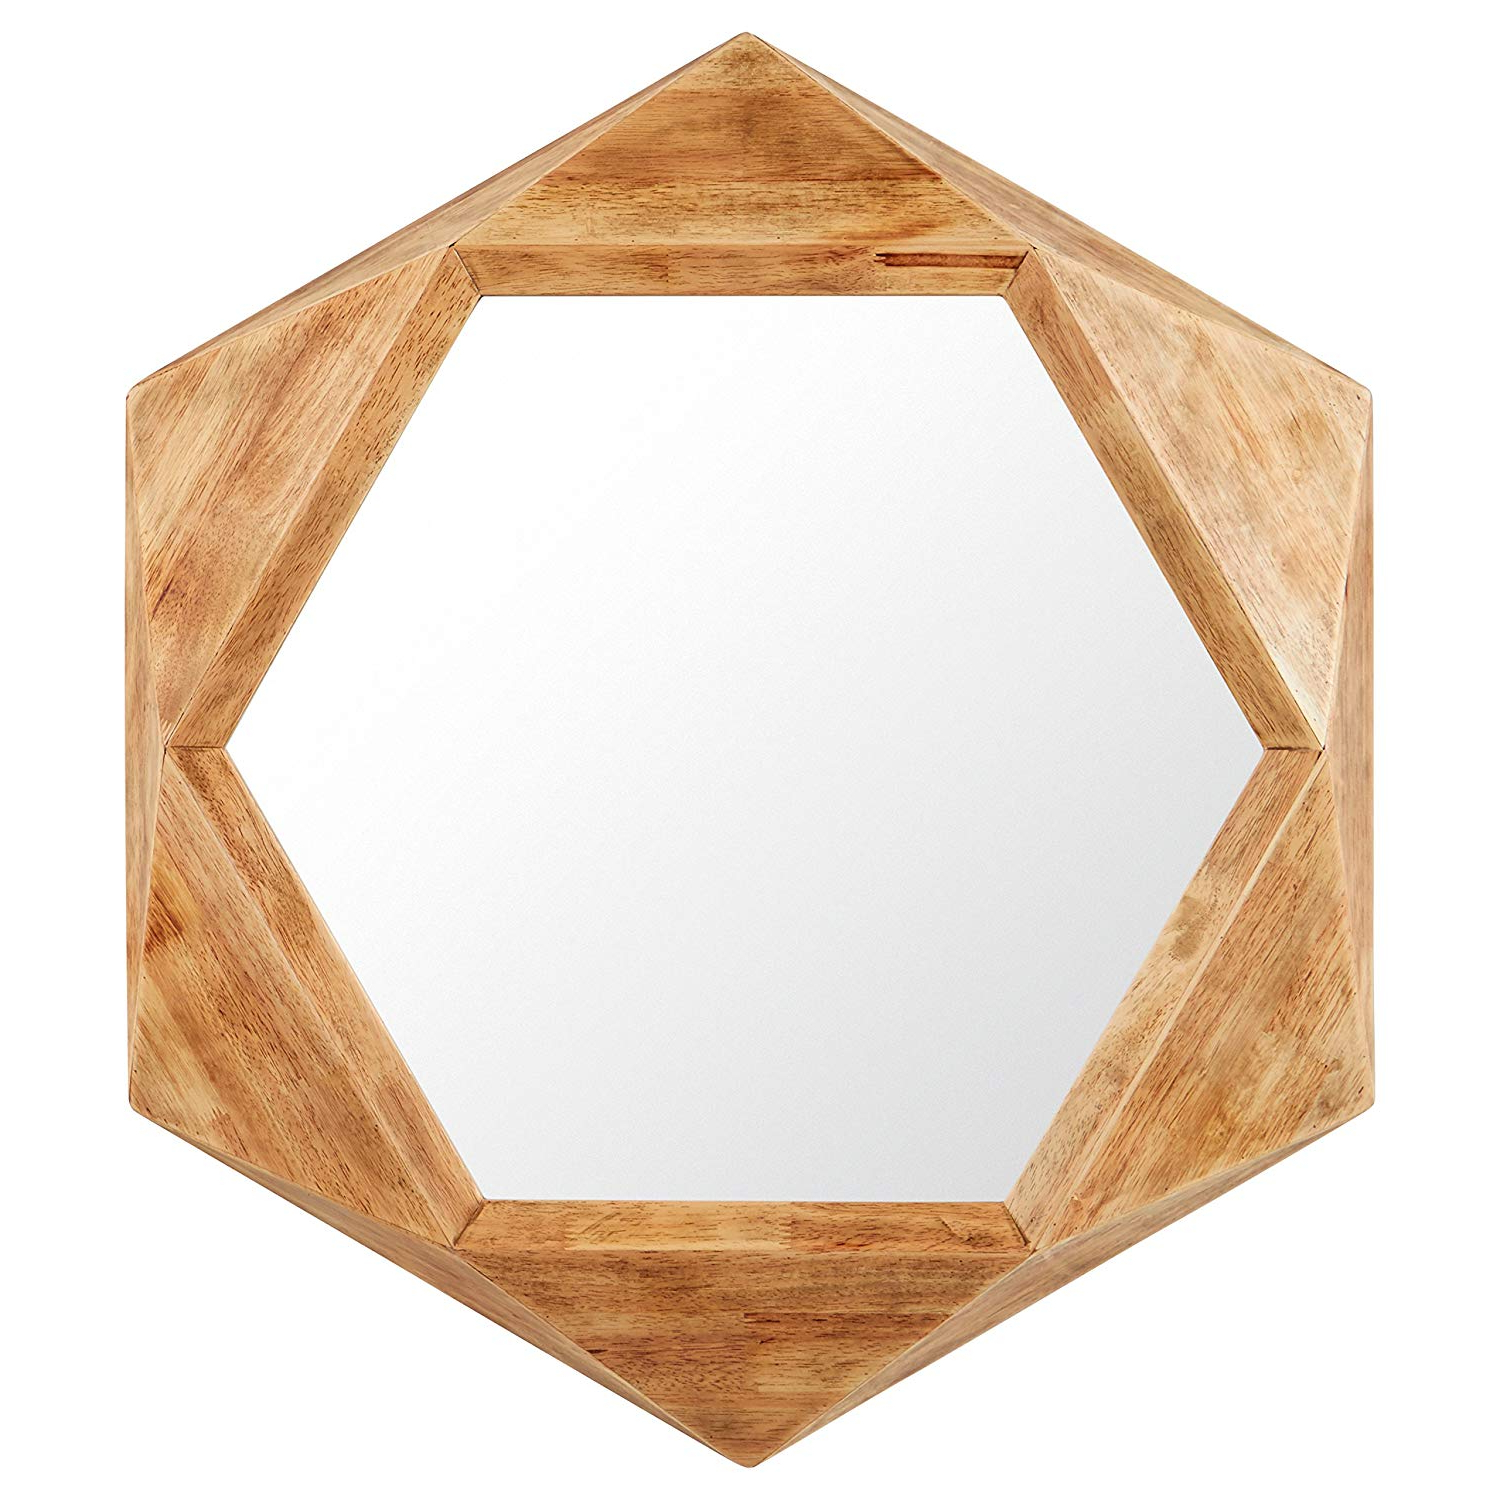 Rivet Modern Hexagon Wood Frame Hanging Wall Mirror, 30 Inch Height, Natural Throughout Latest Hexagon Wall Mirrors (Gallery 5 of 20)